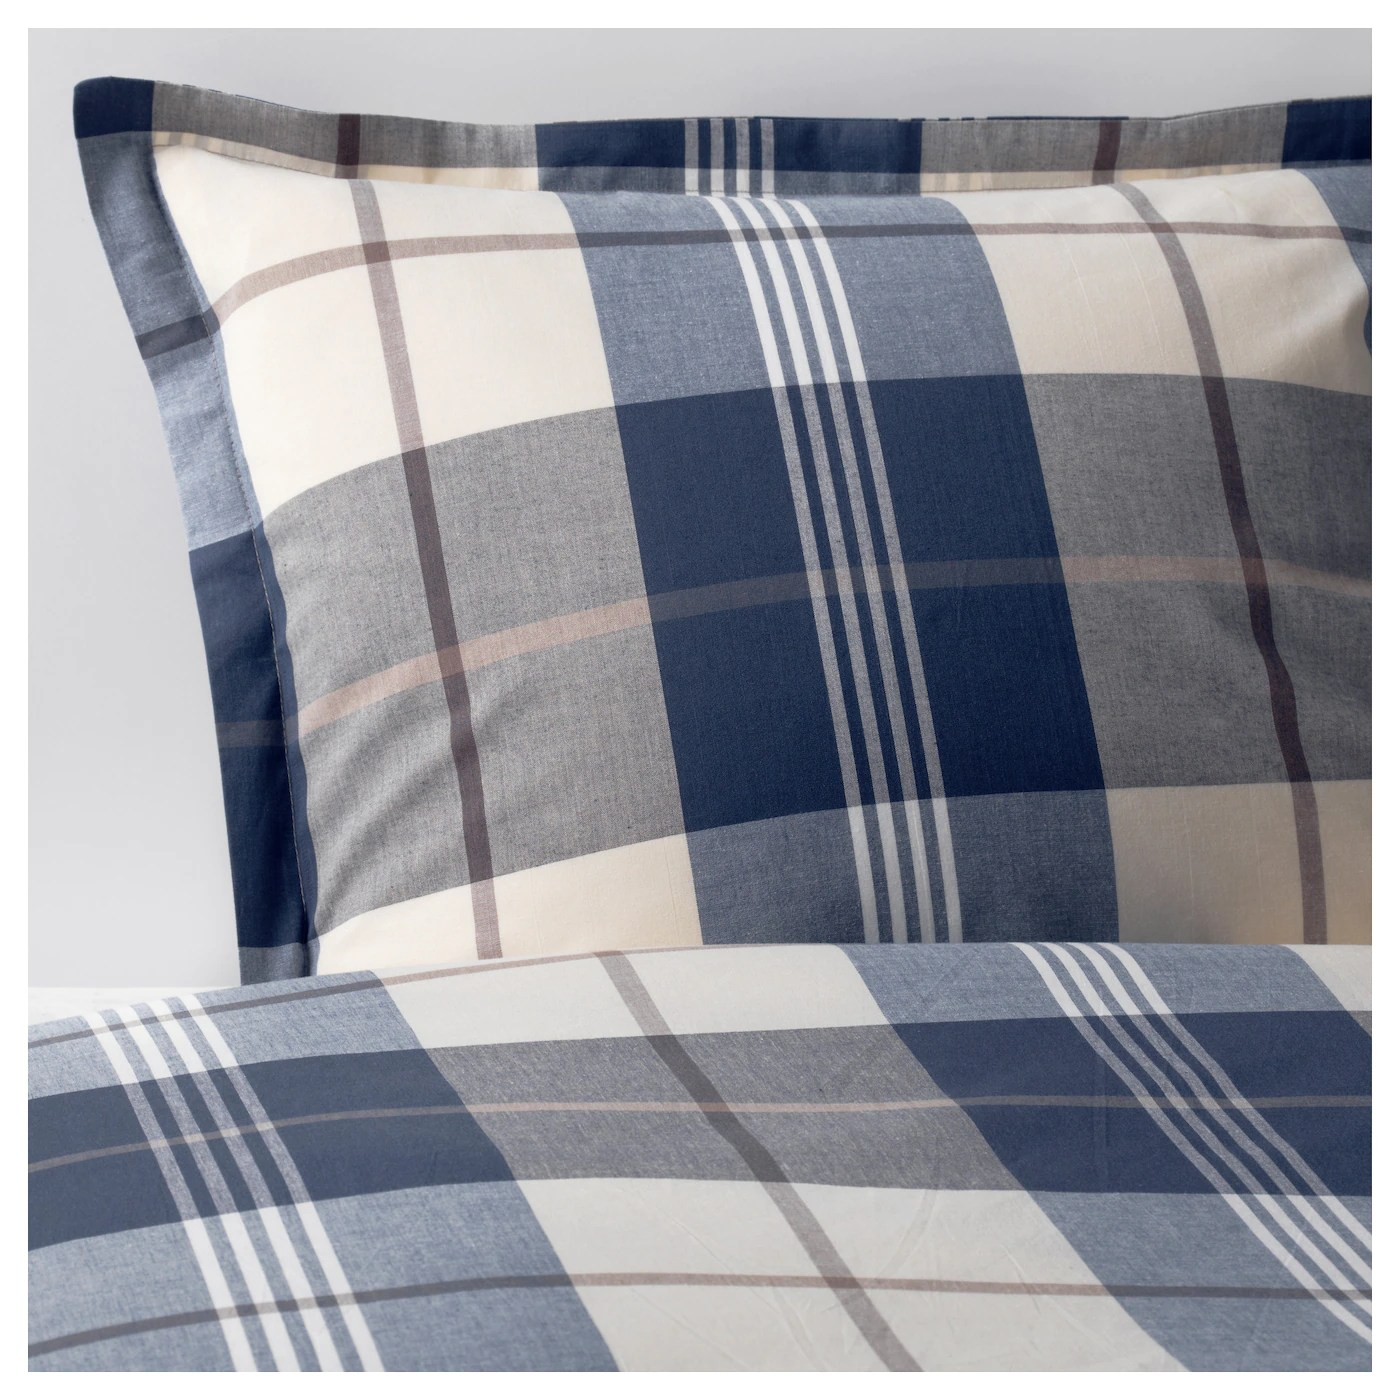 Flanel Dekbedovertrek Ikea Duvet Covers And Bedroom Sets Ikea